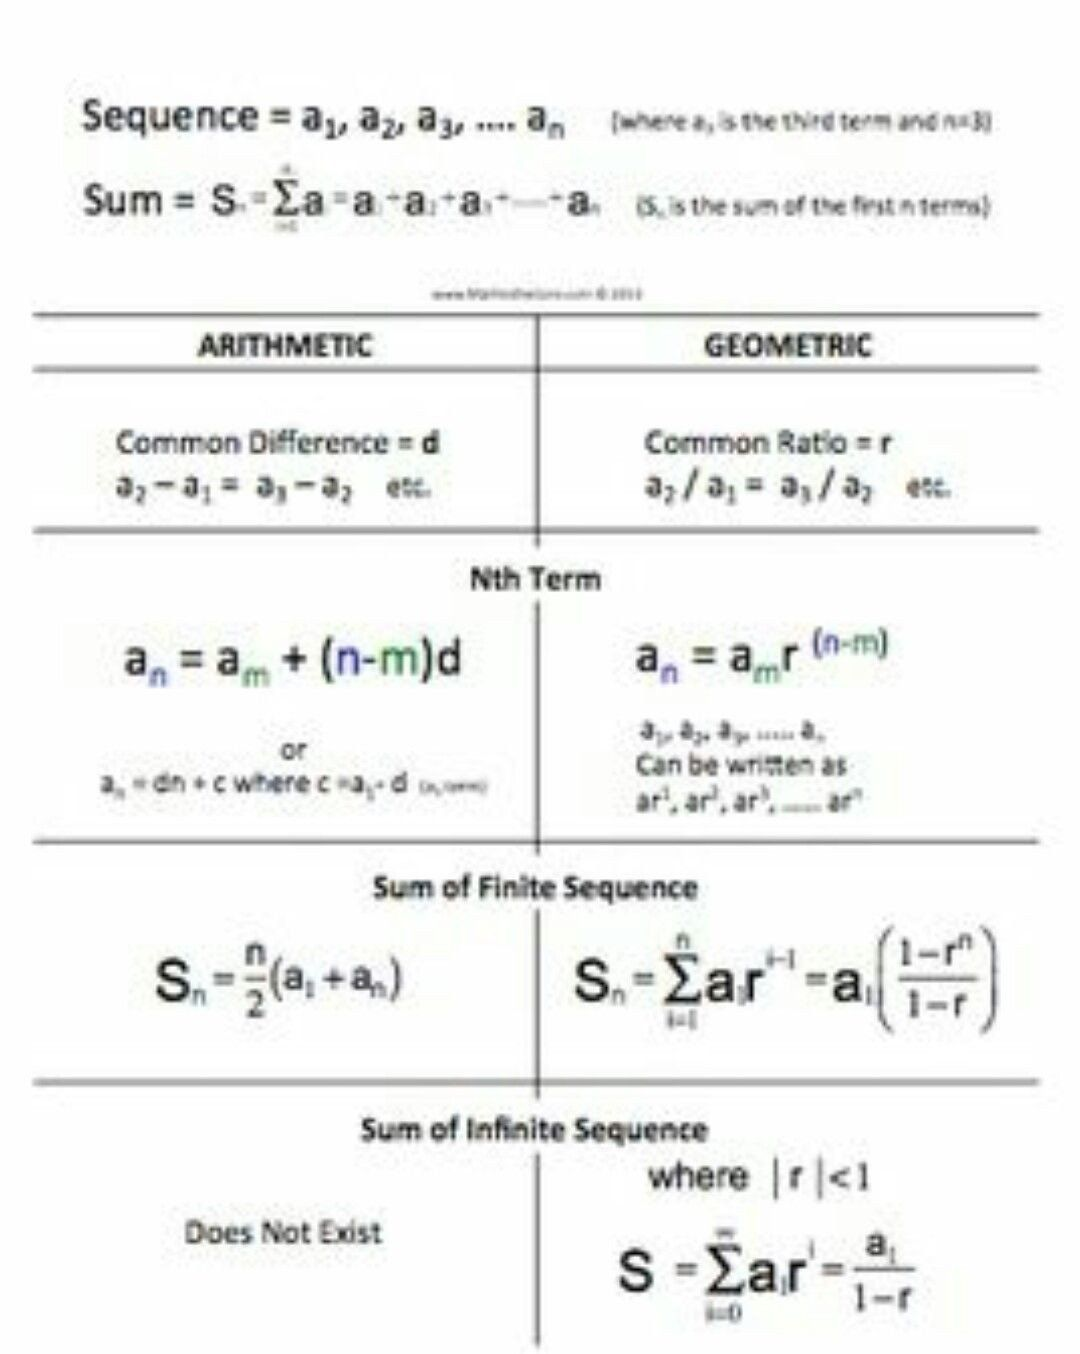 Arithmetic And Geometric Sequences Worksheet Pin By Rubika Marimuthu On Maths In 2020 Geometric Sequences Maths Solutions Arithmetic Sequences